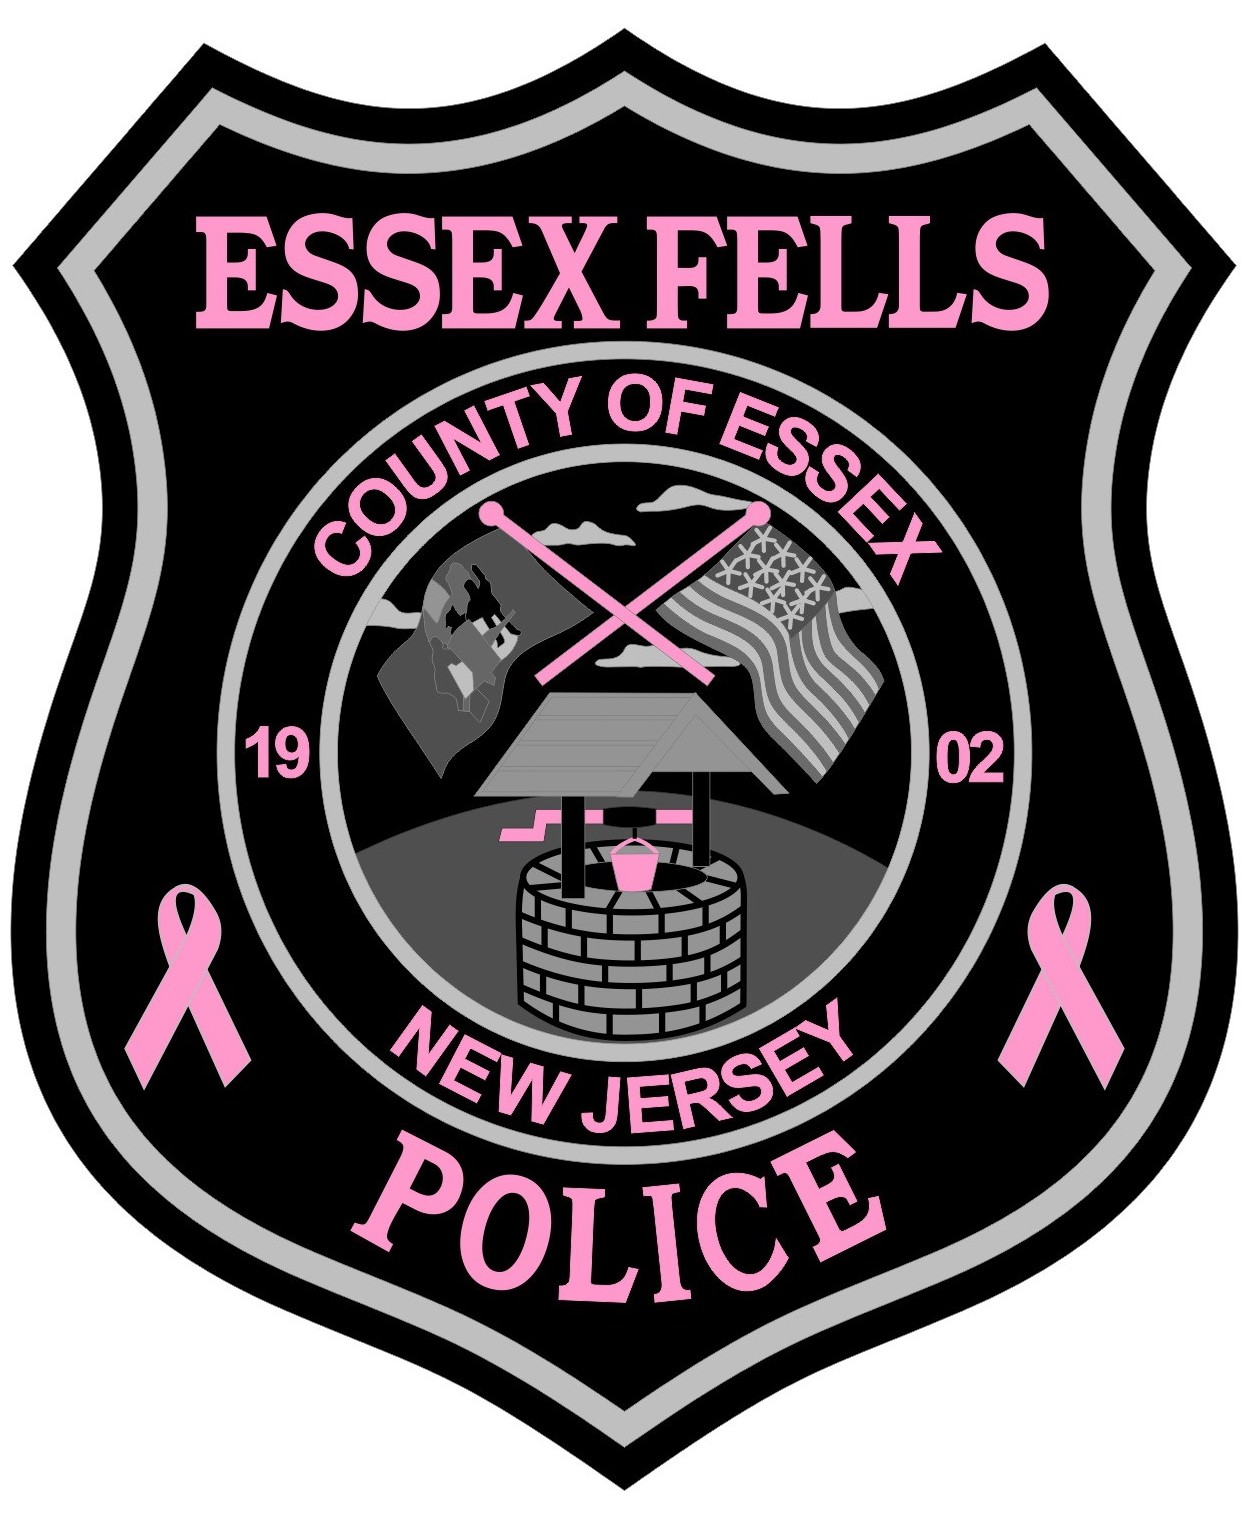 Essex Fells Police (NJ) - PINK PATCH 2017_edited (2).jpg